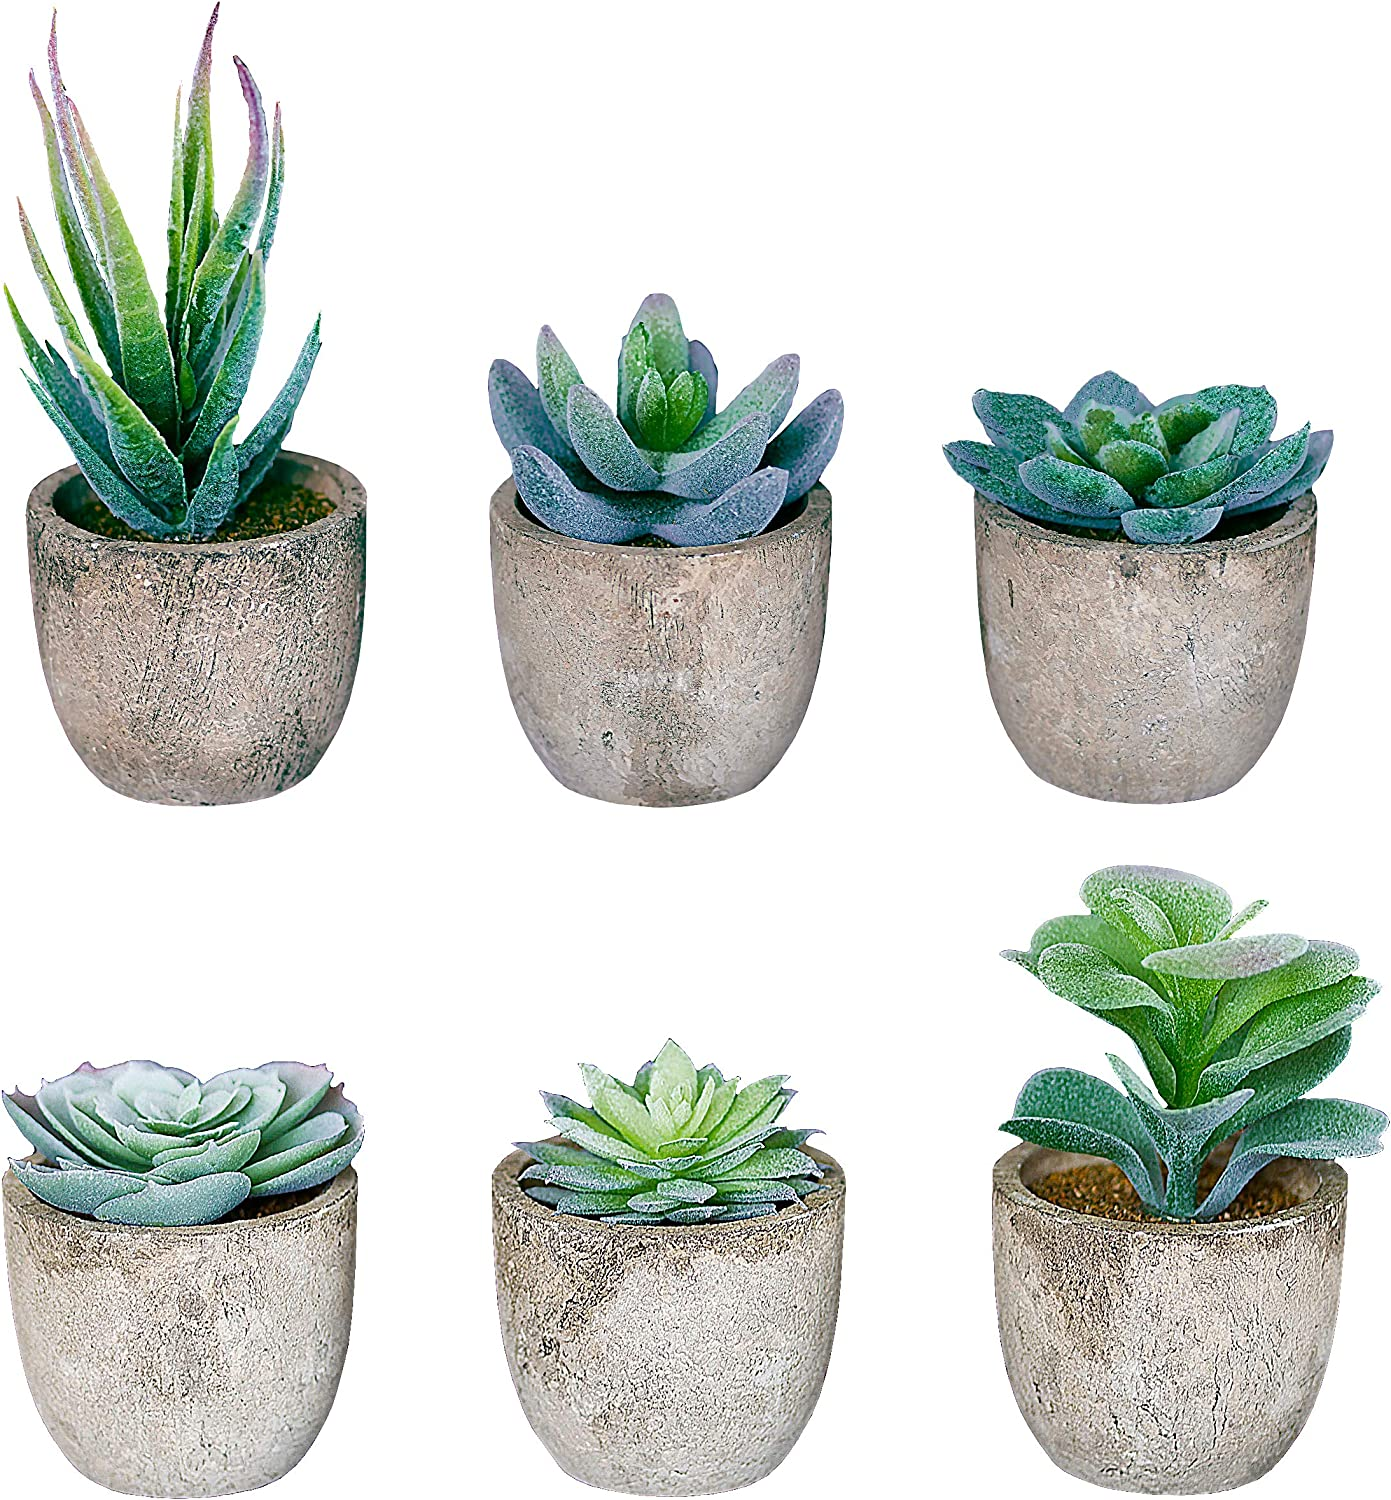 Set of 6 Artificial Succulent Plants with Pots – Realistic Greenery Flocking Mini Potted Faux Plant Arrangements | For Home Office Decor, Dorm Room, Bathroom, Kitchen Table Centerpieces